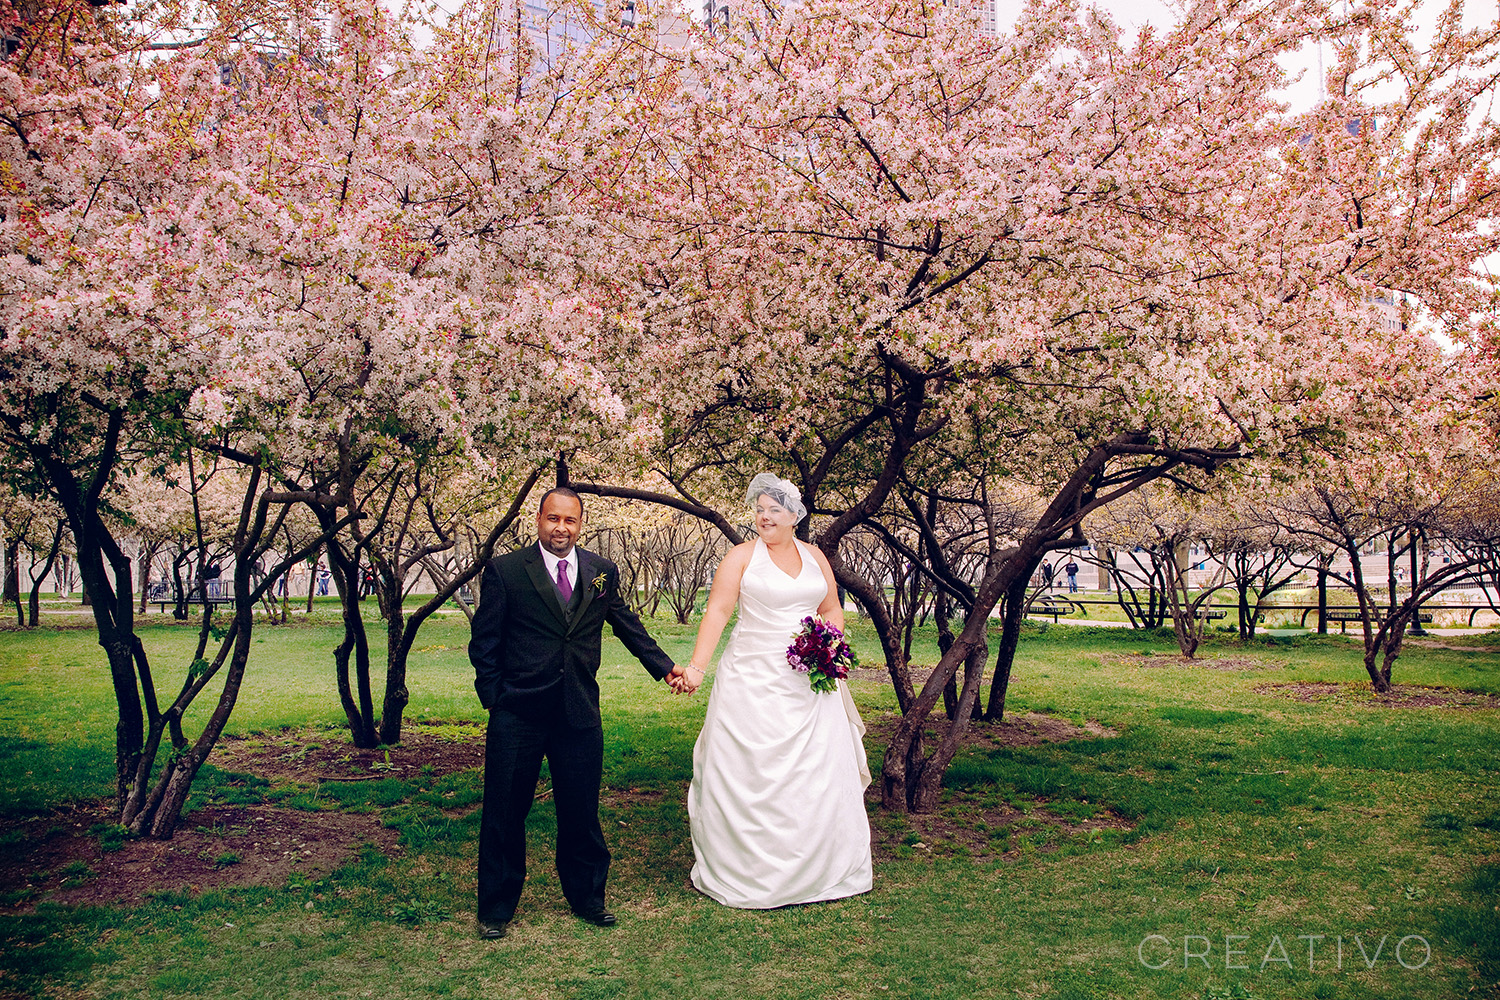 25. Spring elopement in Chicago among briefly blooming magnolia trees